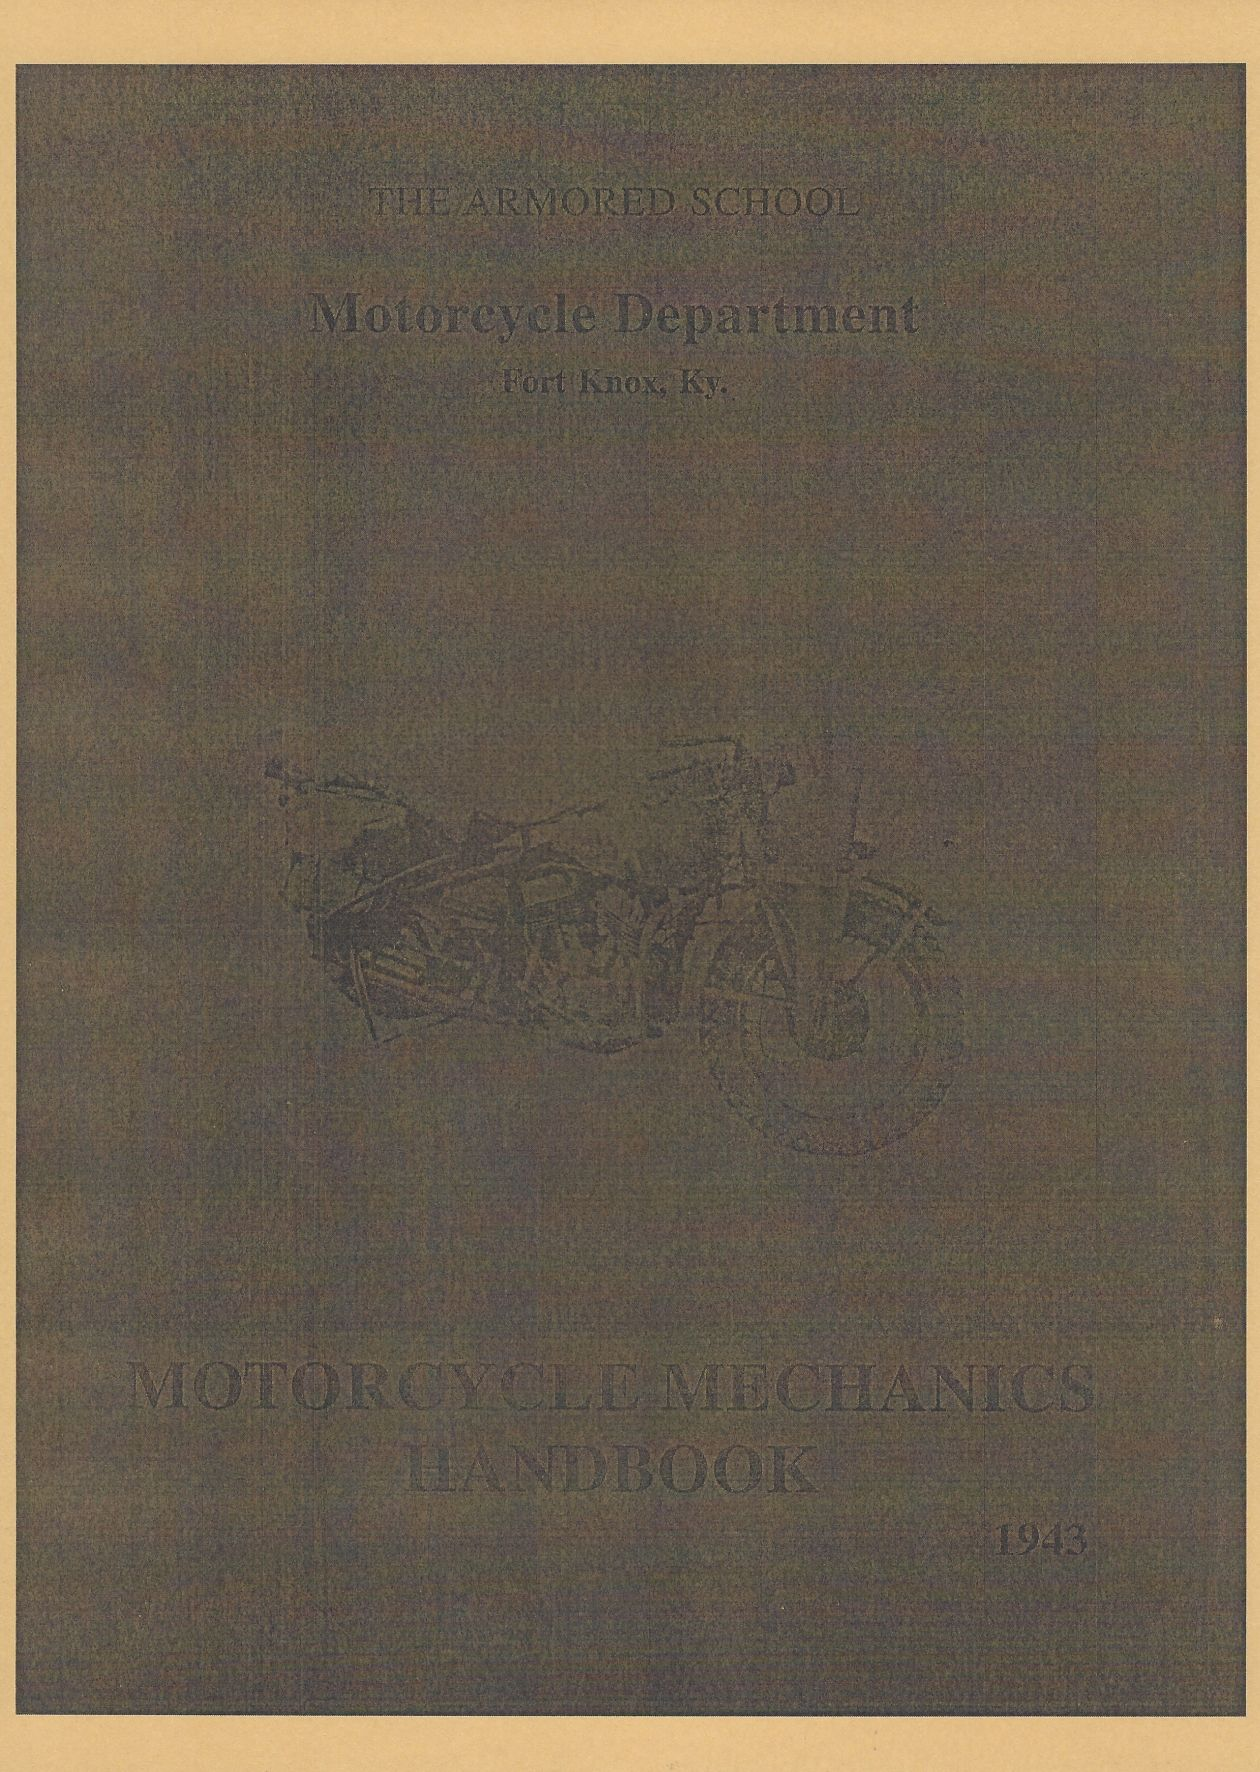 MOTORCYCLE MECHANICS HANDBOOK